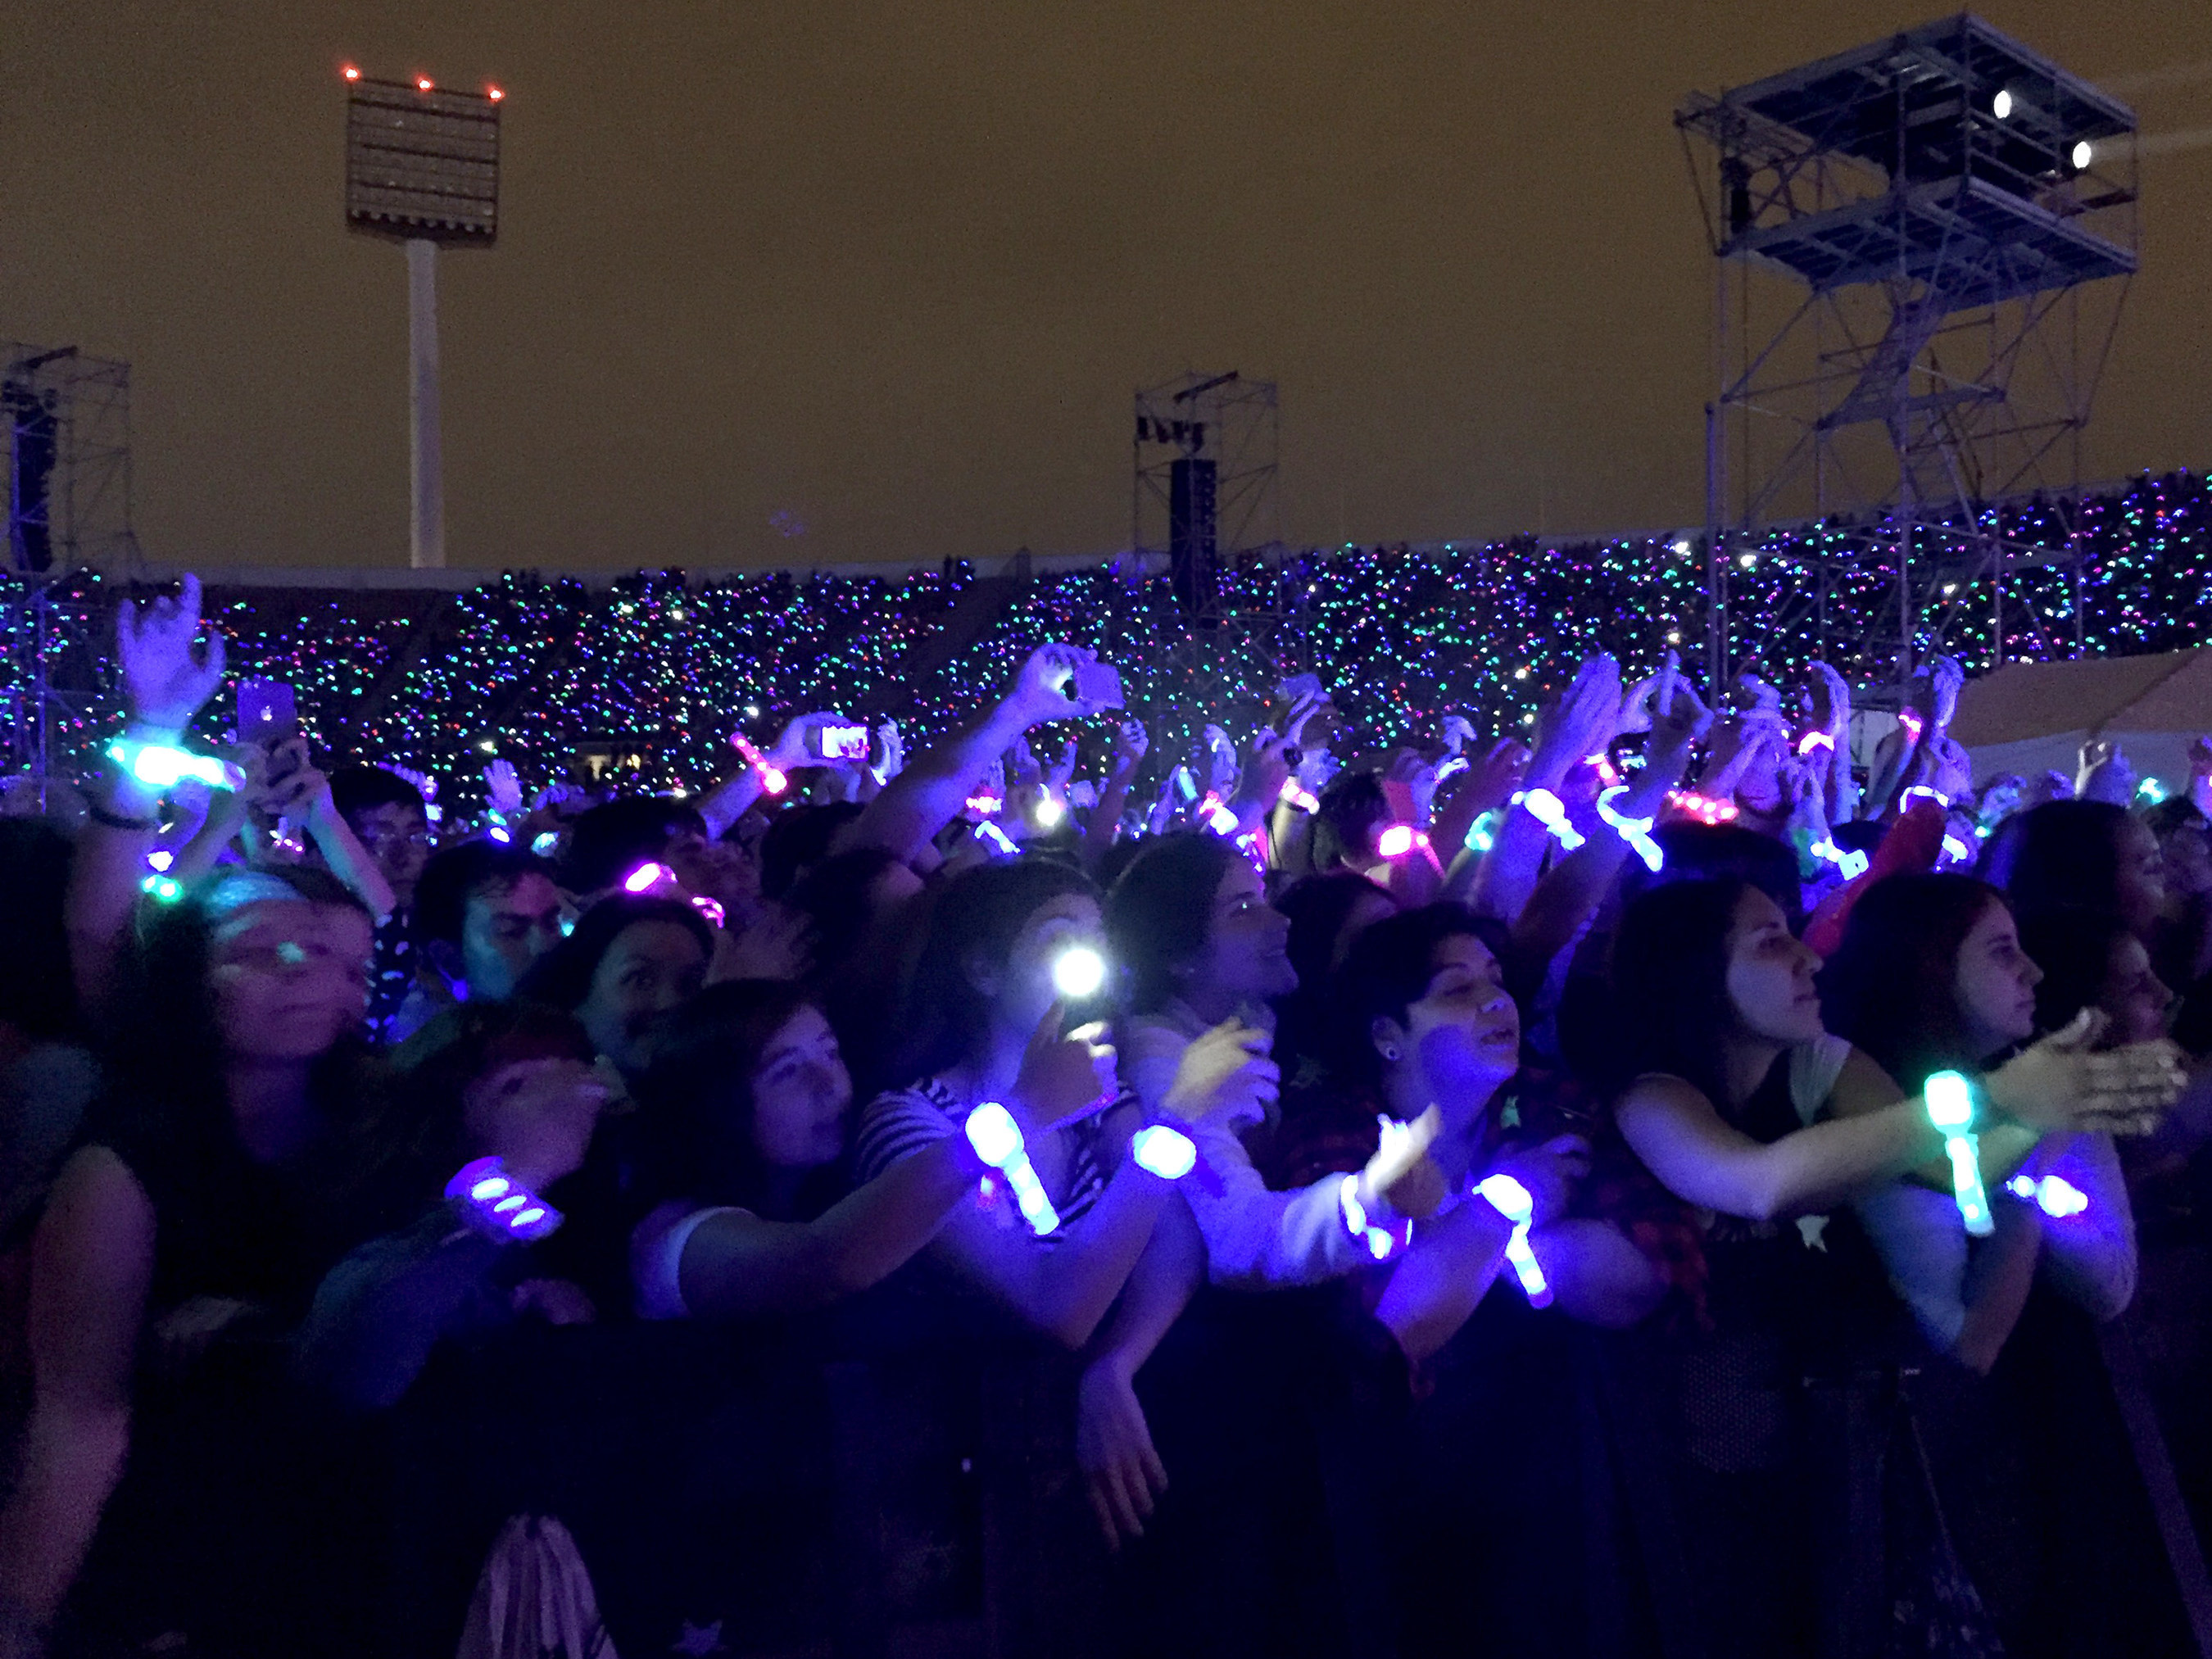 Audiences Love Lighting Up With LED Wristbands